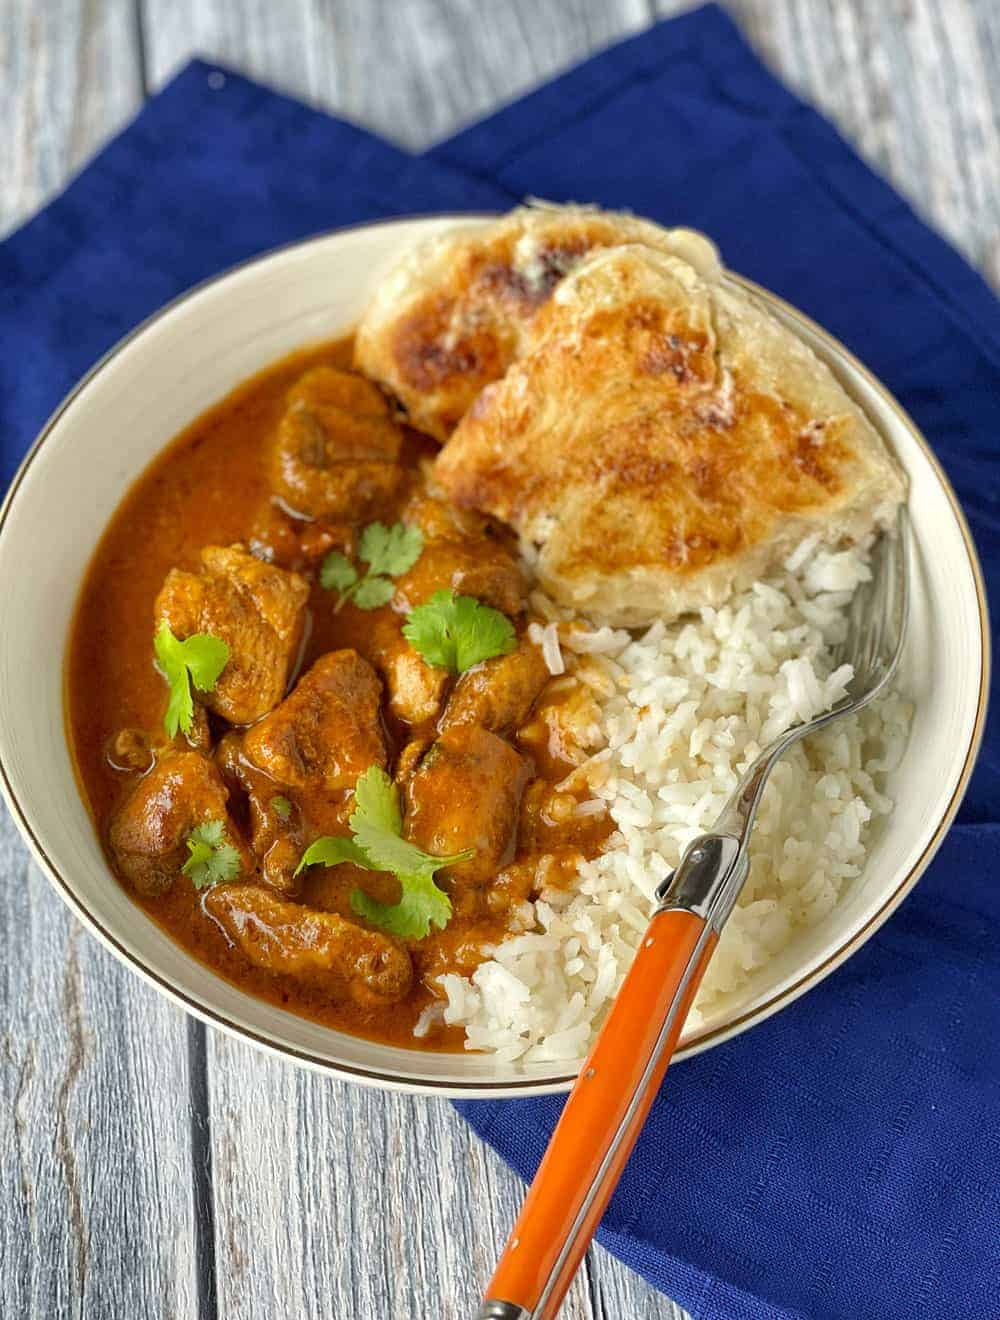 Butter chicken, rice, coriander and roti in a white bowl with an orange fork.